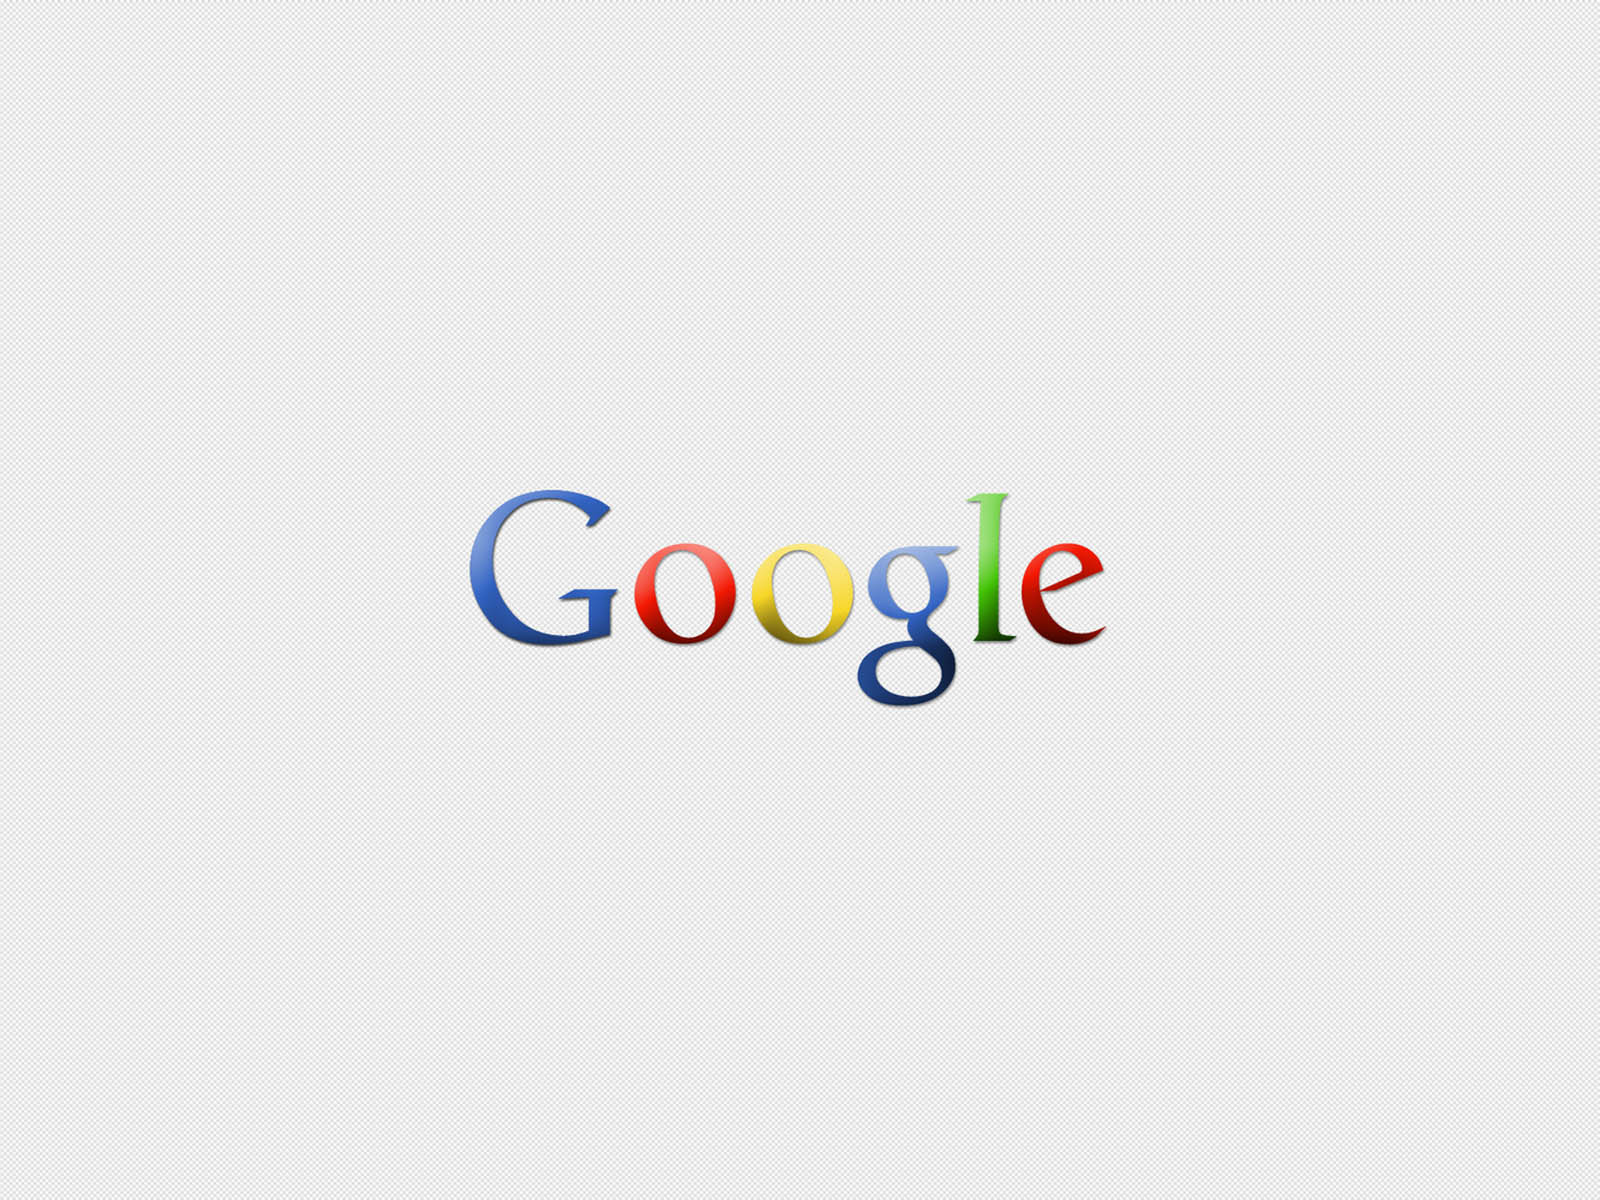 Google Backgrounds And Wallpapers ~ Desktop Wallpaper - photo#9